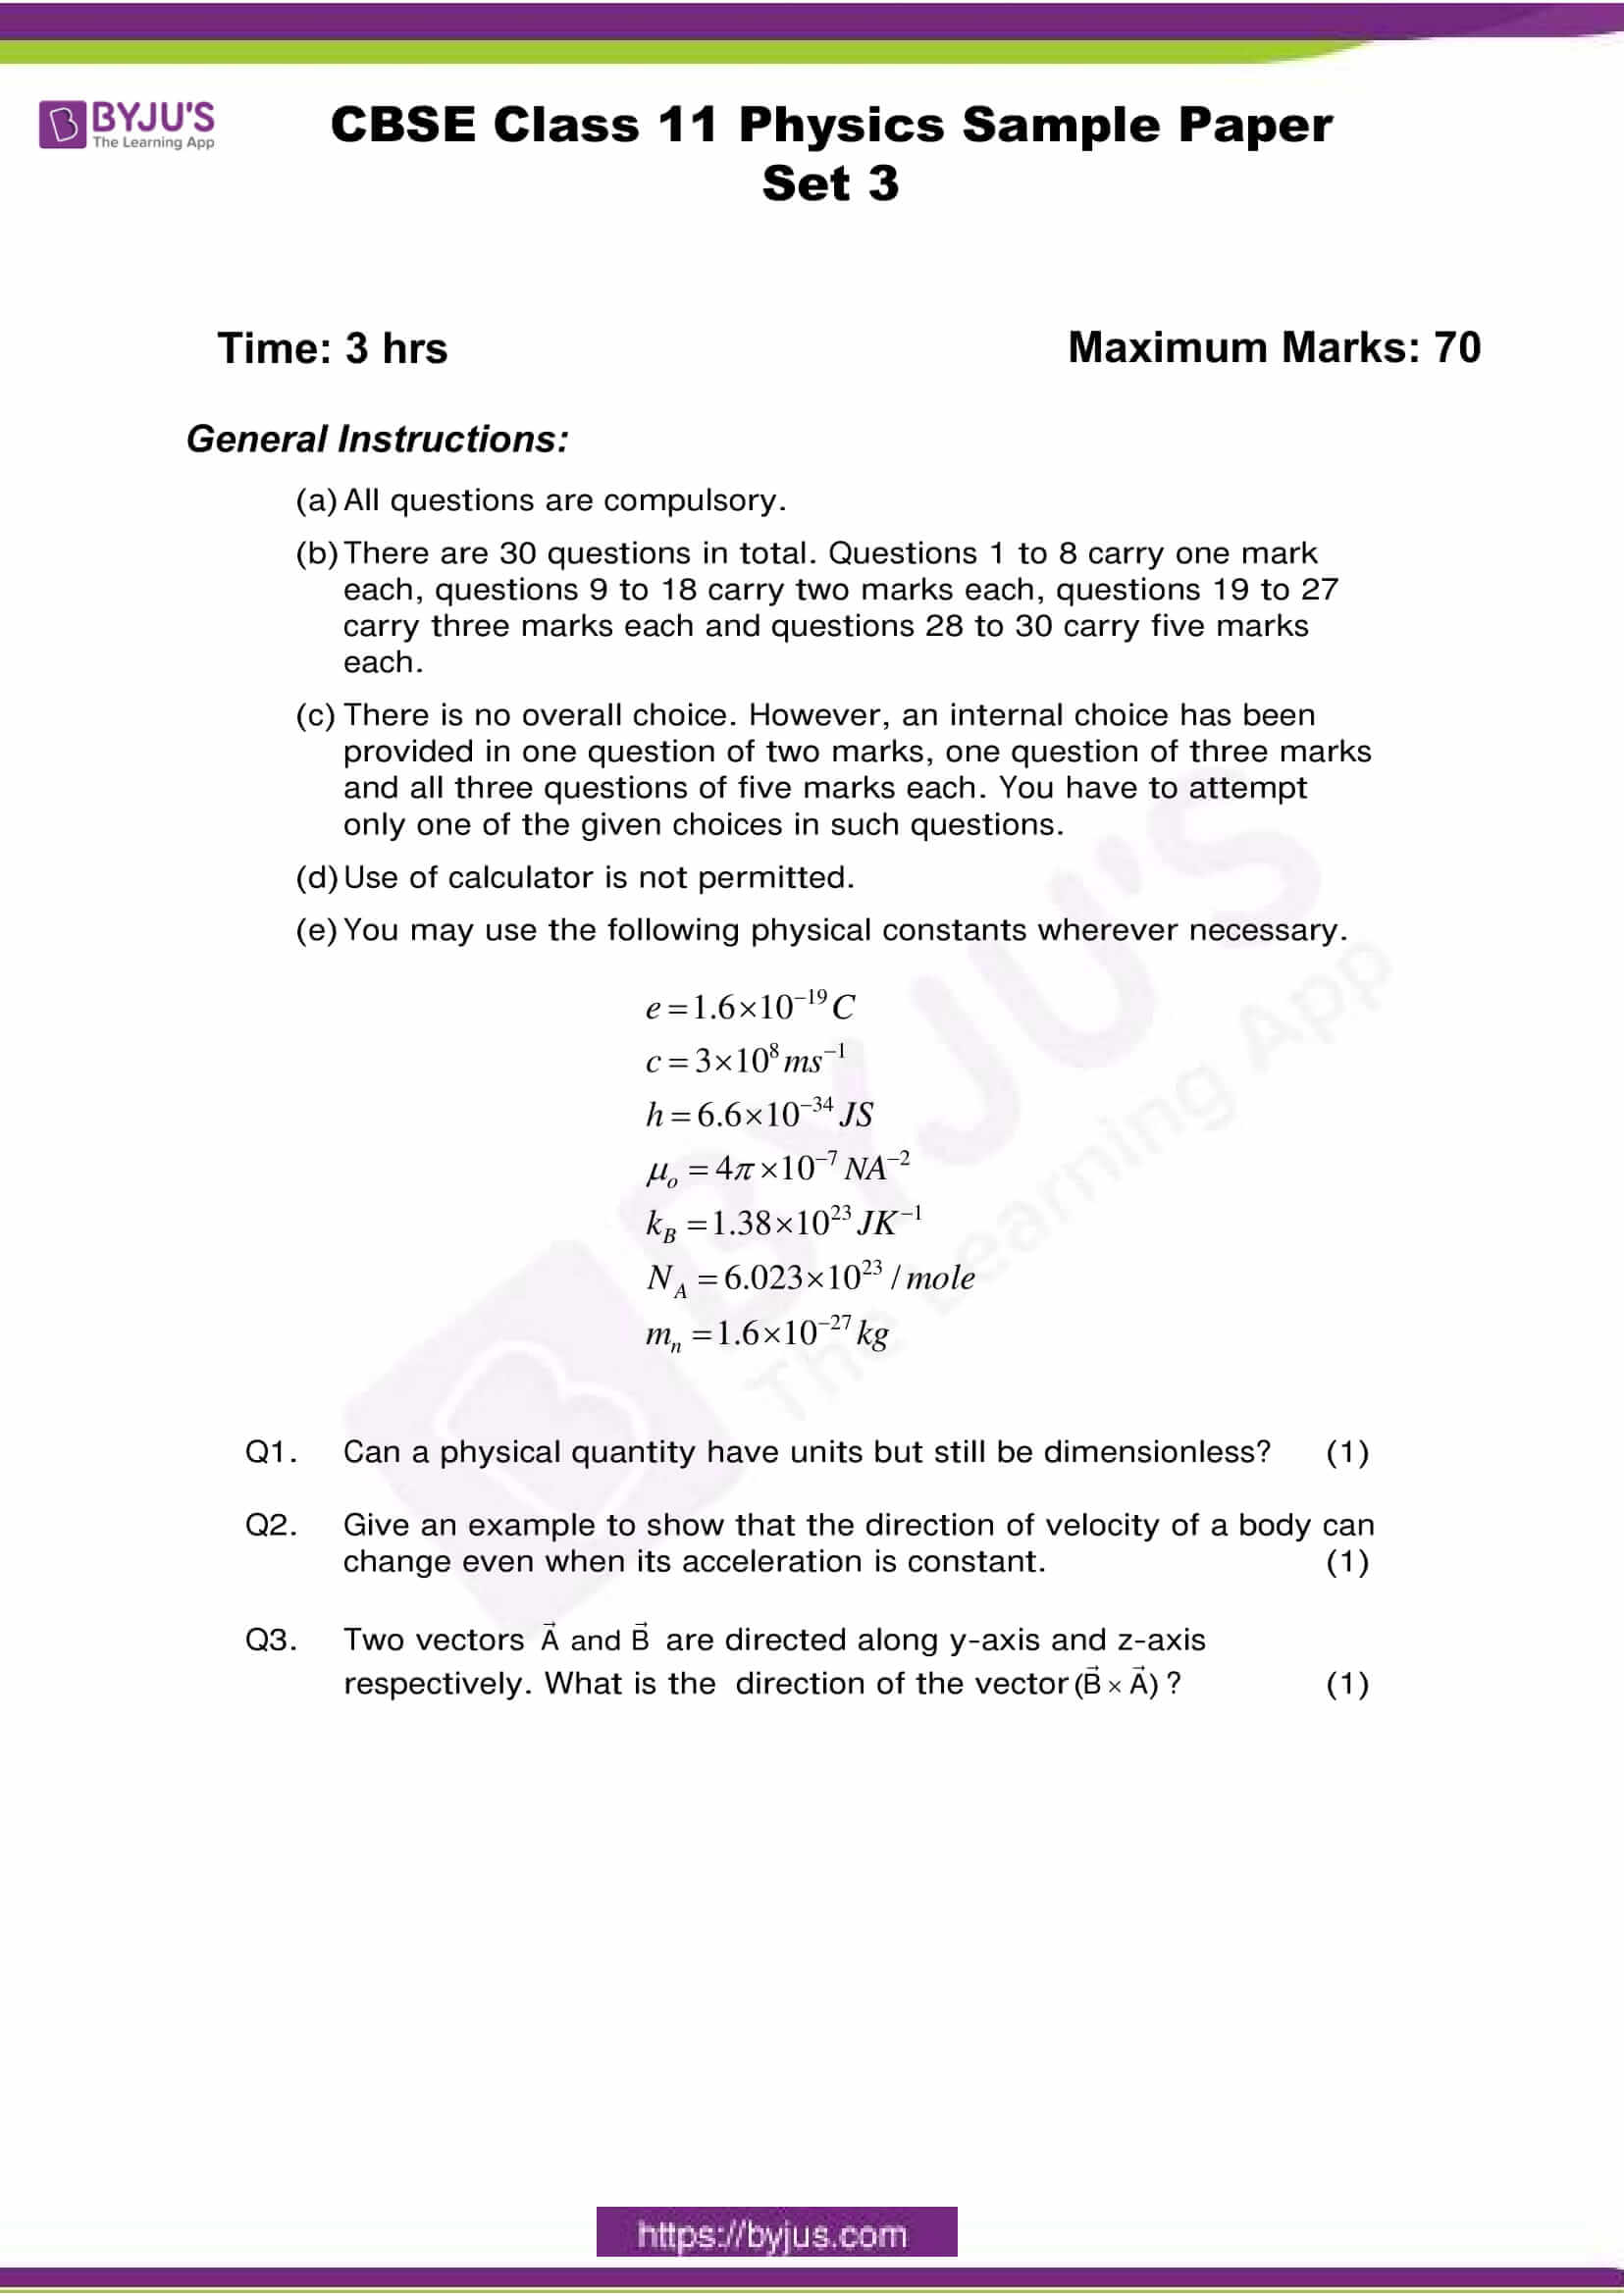 cbse class 11 phy sample paper set 3